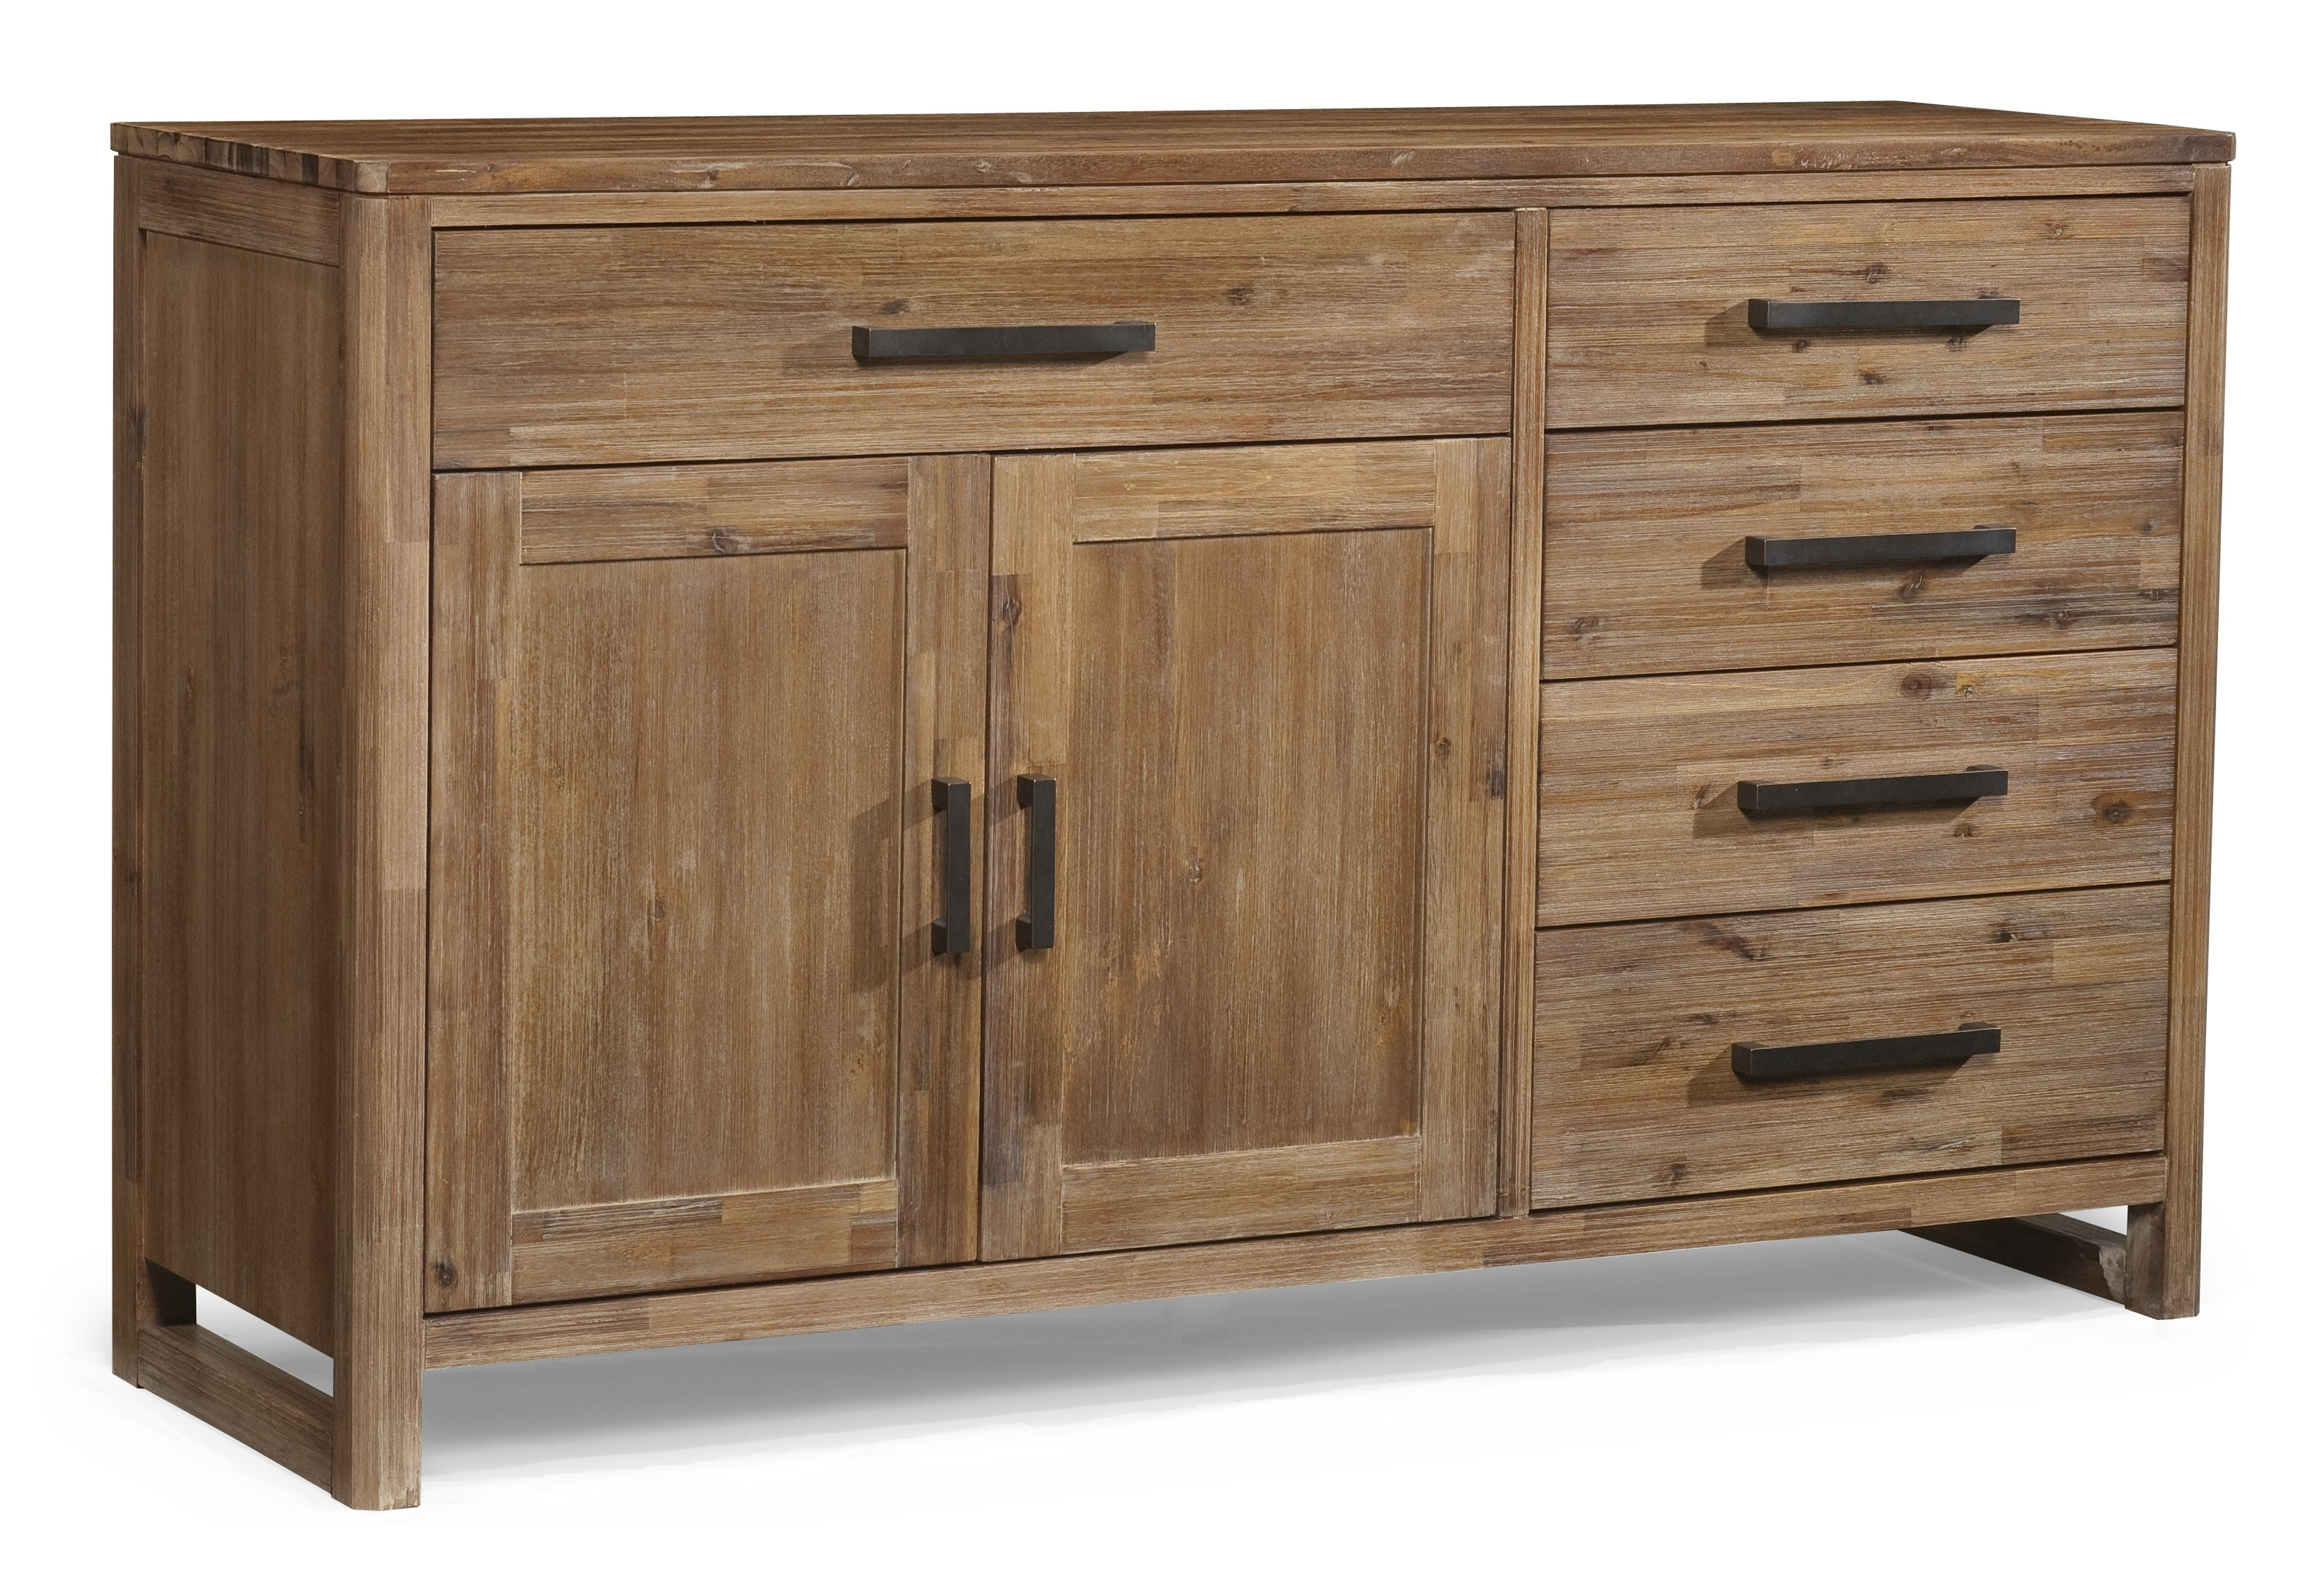 Ciera Sideboard | Allmodern intended for Boyce Sideboards (Image 7 of 30)